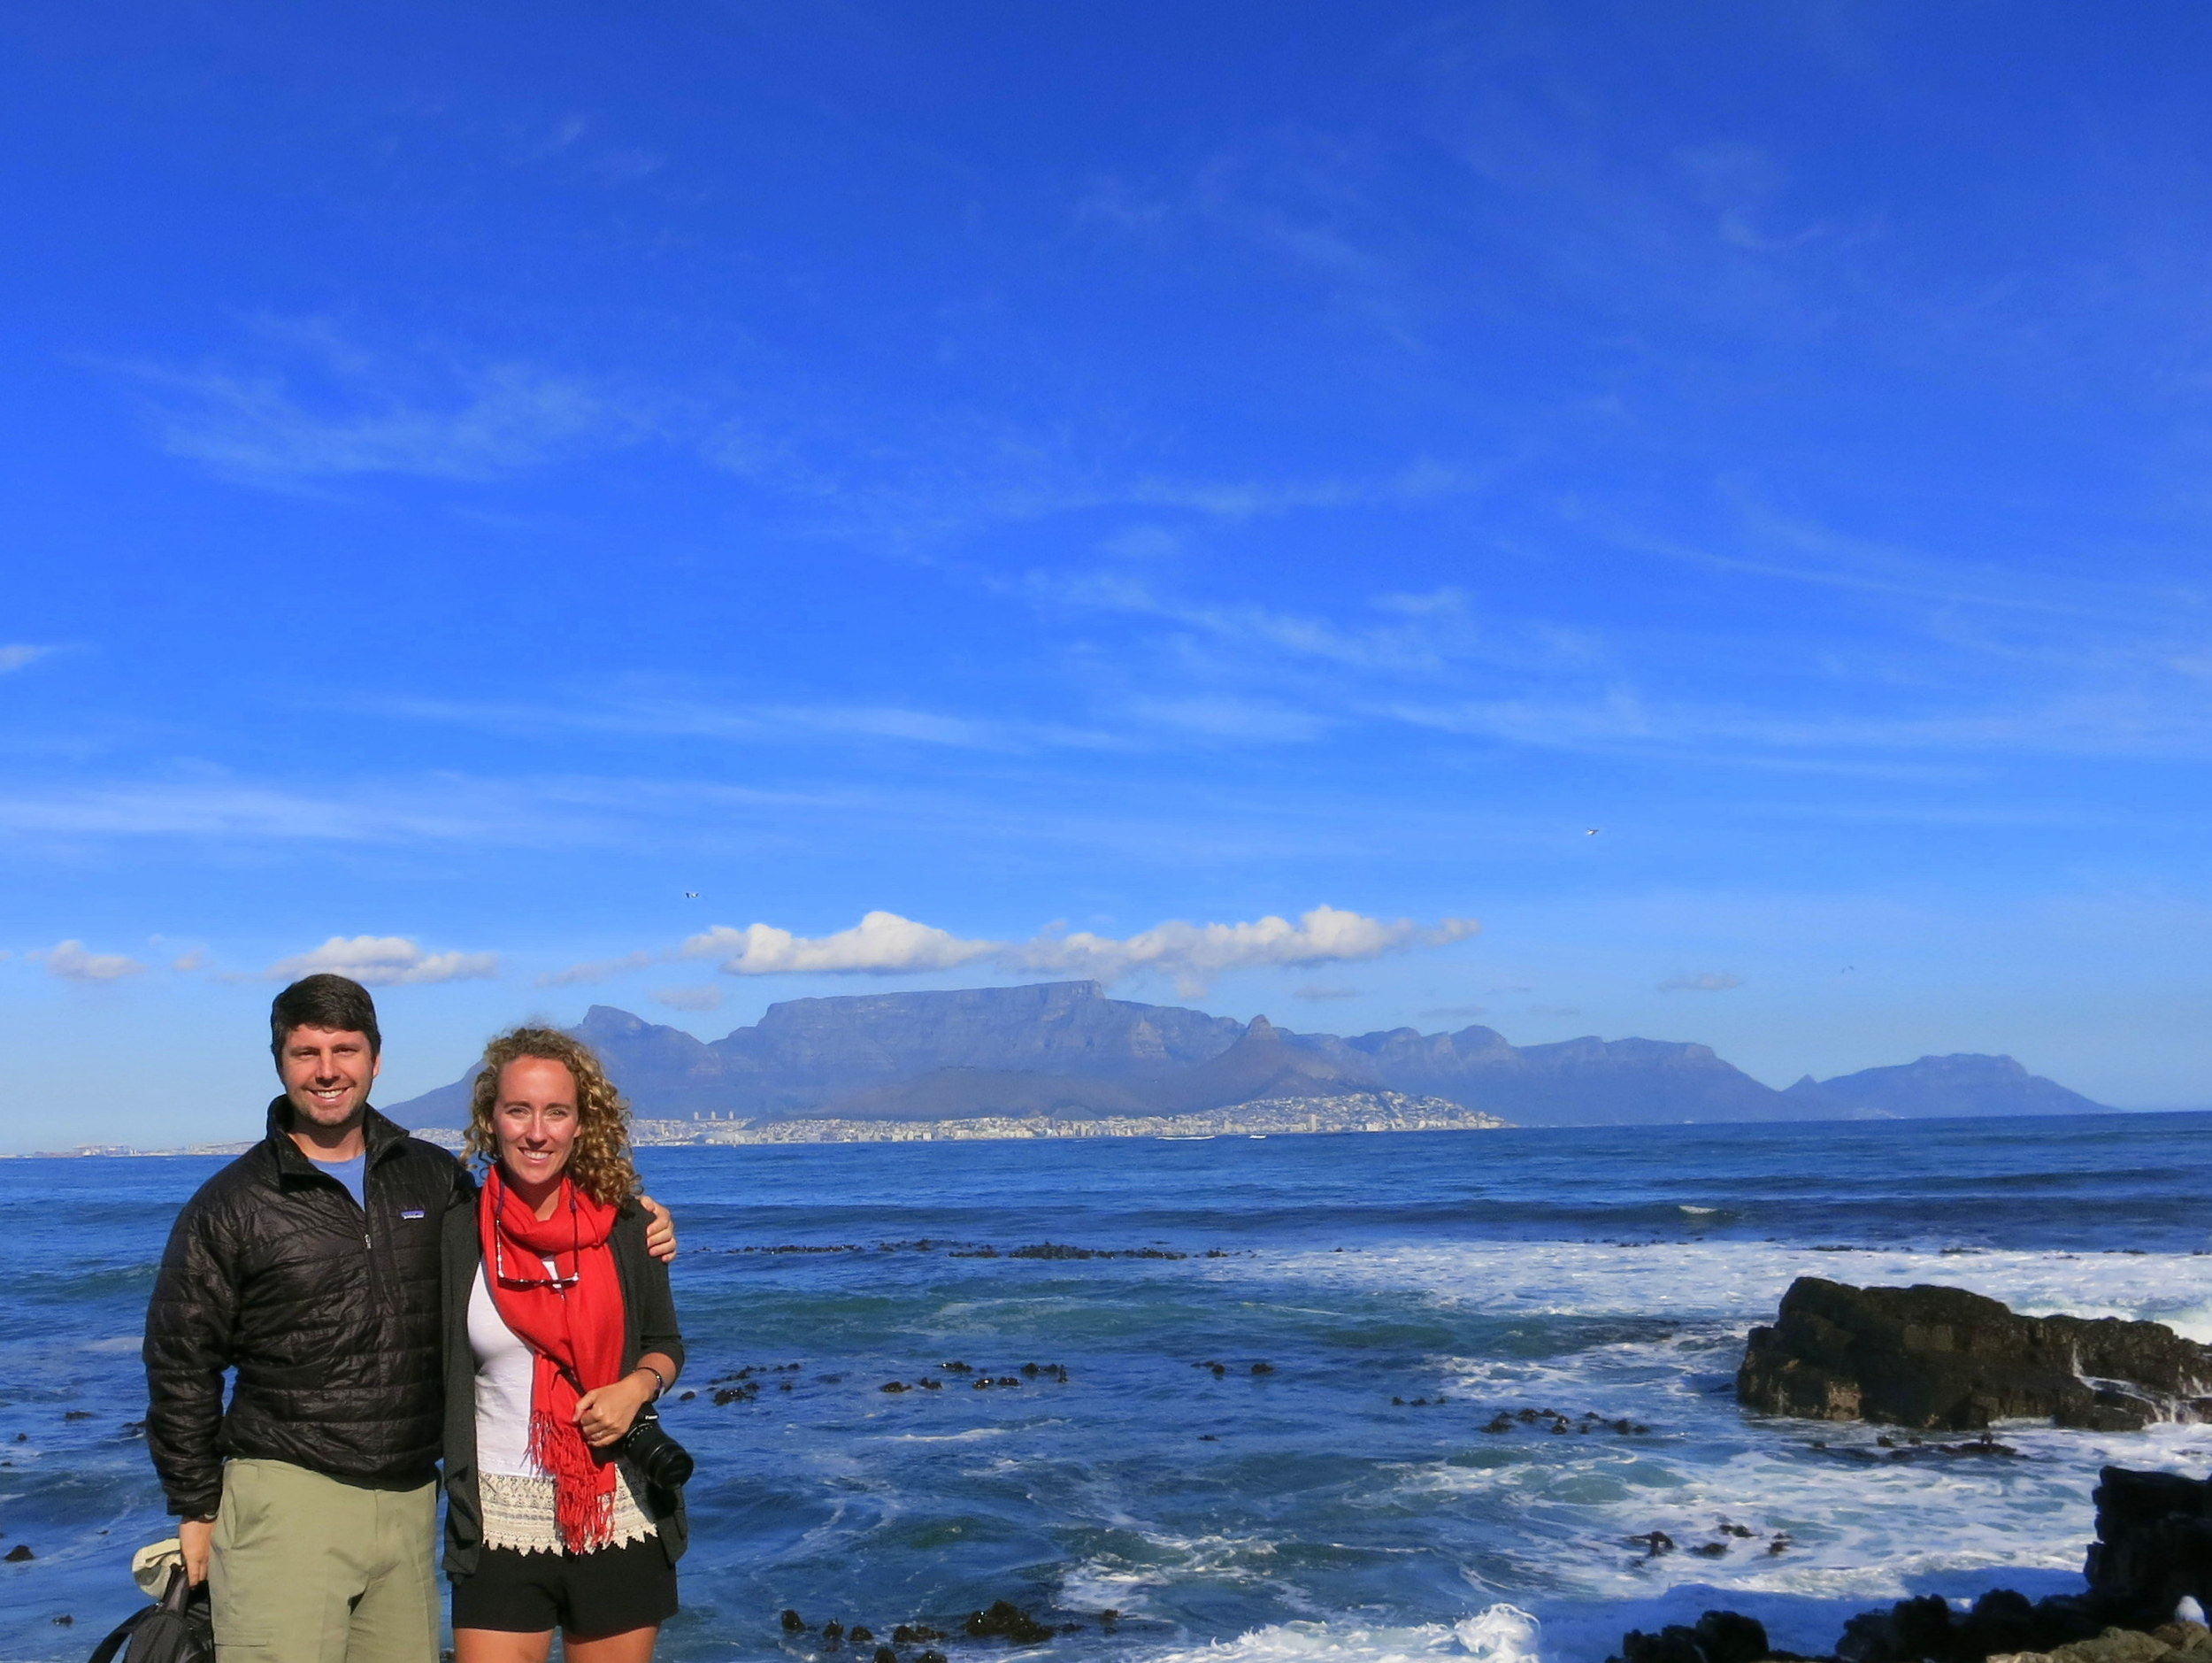 The view of Cape Town from the island!